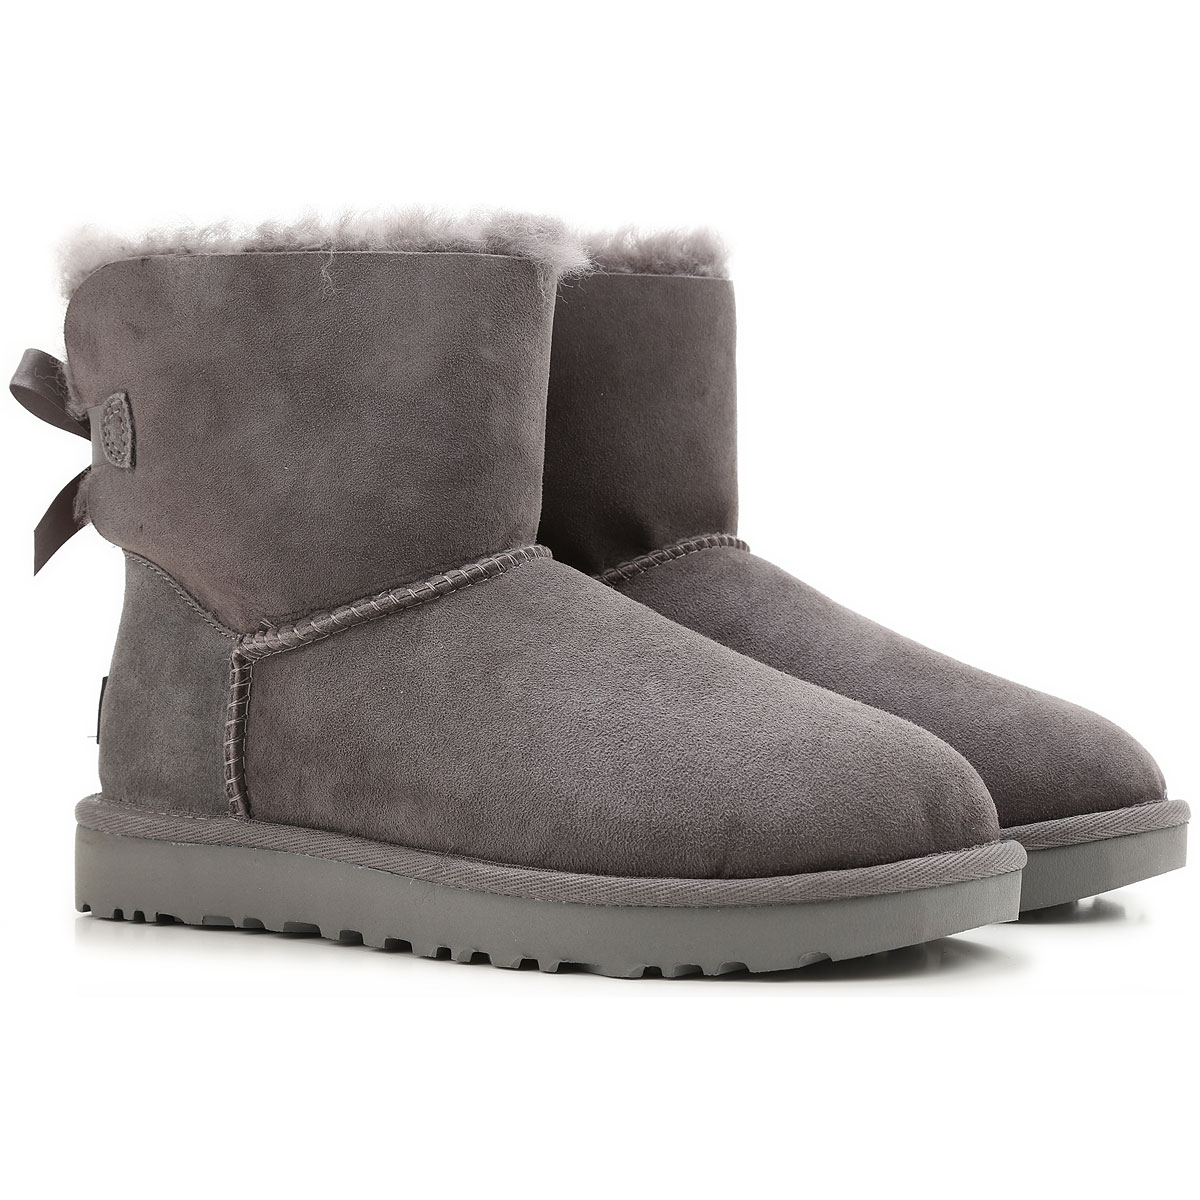 UGG Boots for Women, Booties On Sale, Grey, Suede leather, 2019, USA 5 UK 3 5 EU 36 JAPAN 220 USA 6 UK 4 5 EU 37 JAPAN 230 USA 7 UK 5 5 EU 38